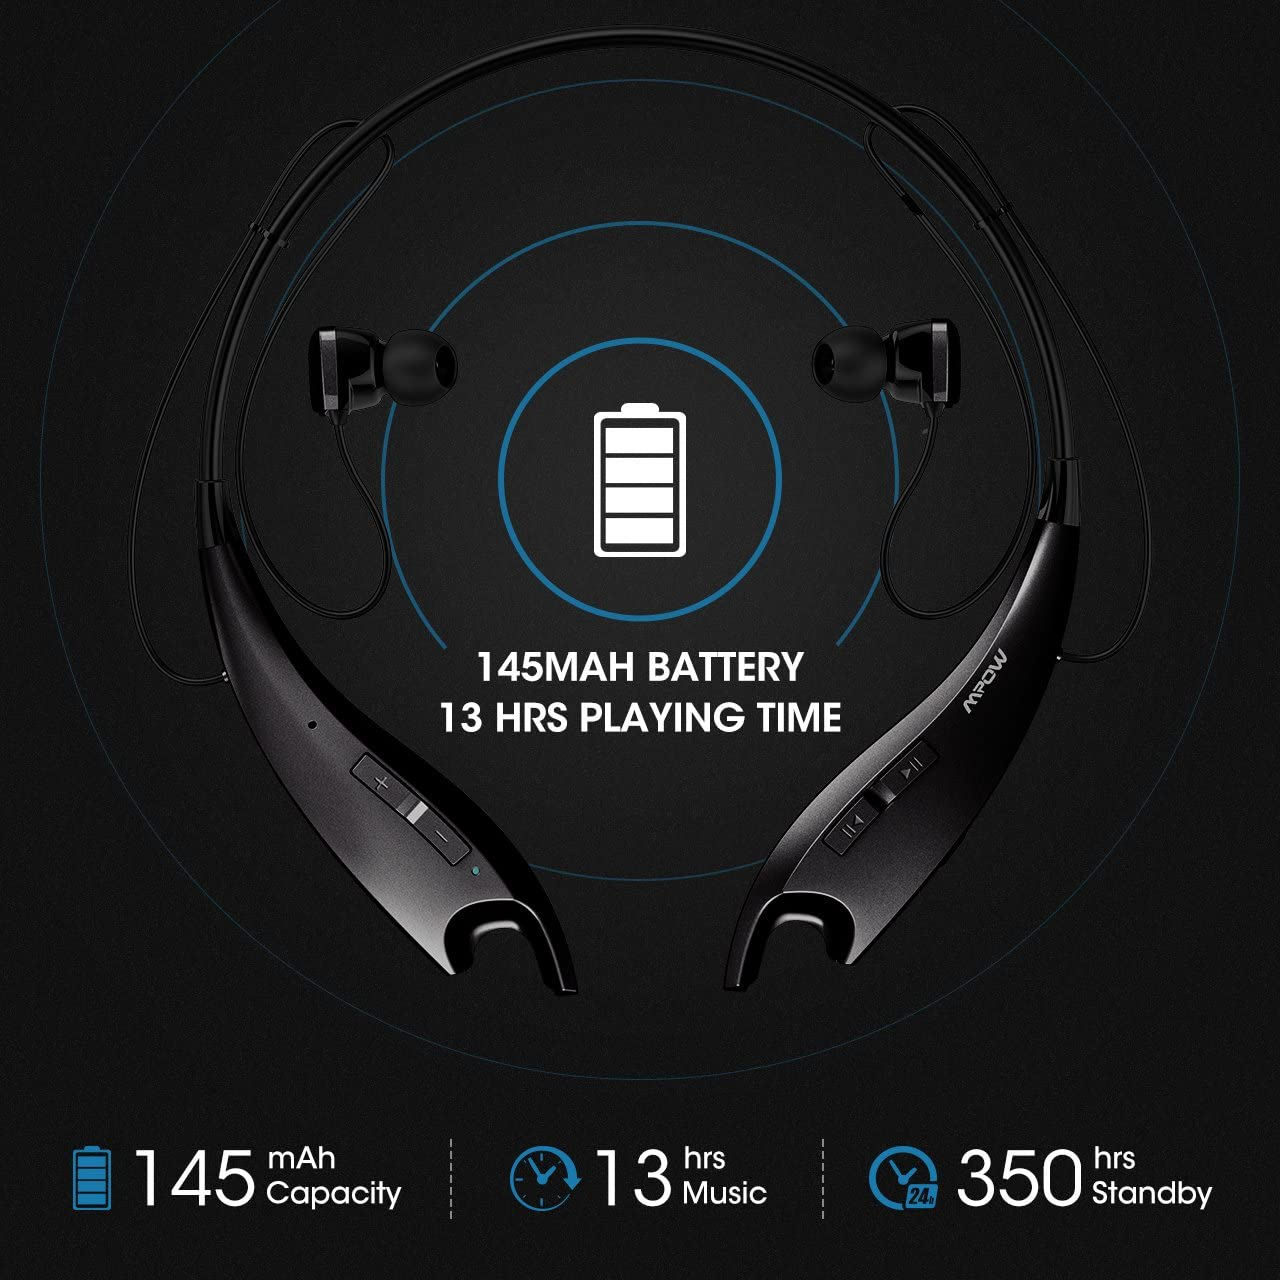 Mpow Jaws Gen-3 Bluetooth Headphones, Wireless Neckband Headphones 13H Playtime, Bluetooth Headset W Call Vibrate Alert CVC 6.0 Noise Cancelling Mic, Bluetooth Earbuds Magnetic, Black